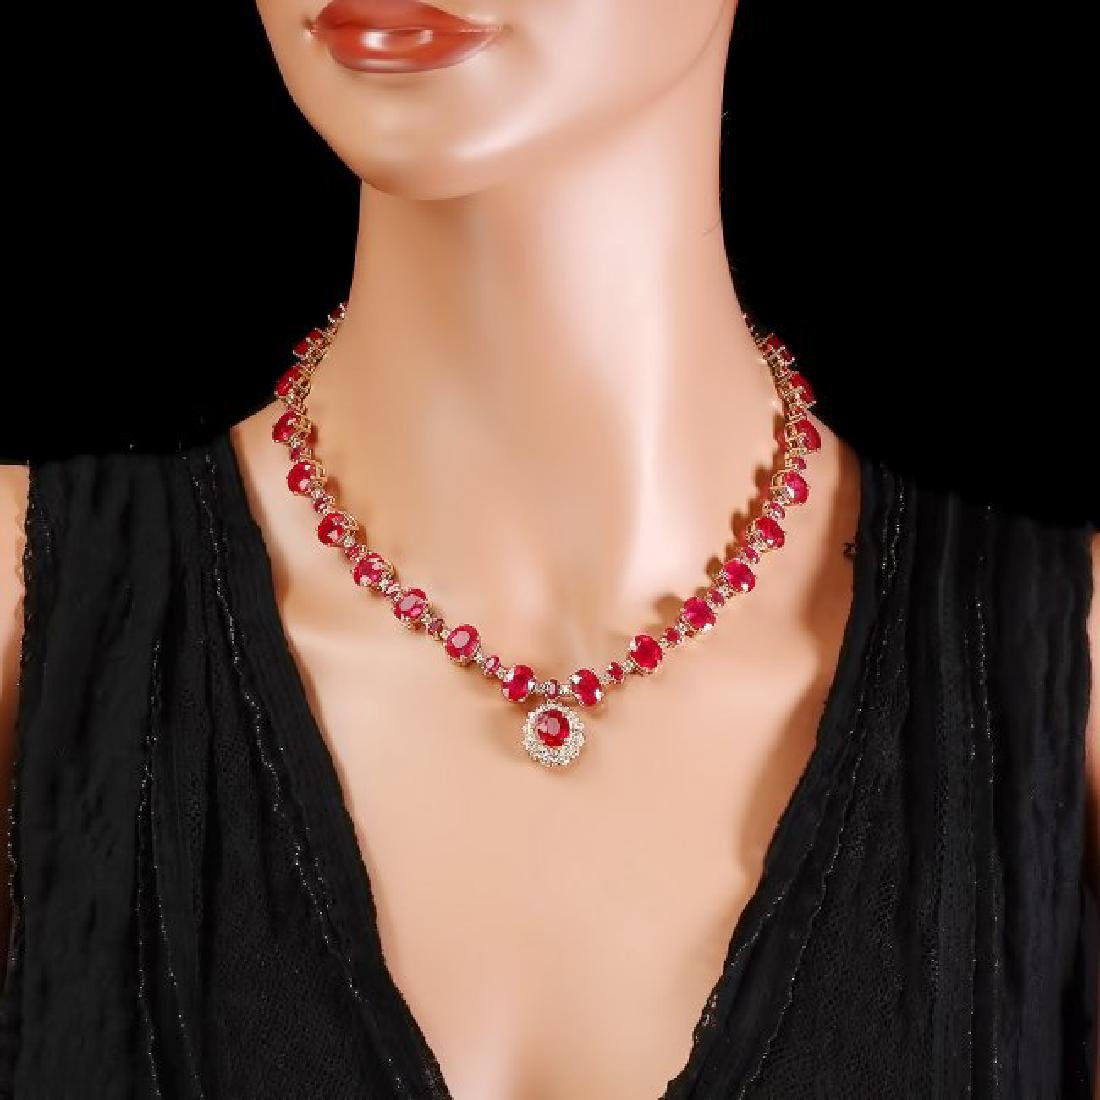 14k Gold 72.00ct Ruby 1.30ct Diamond Necklace - 6